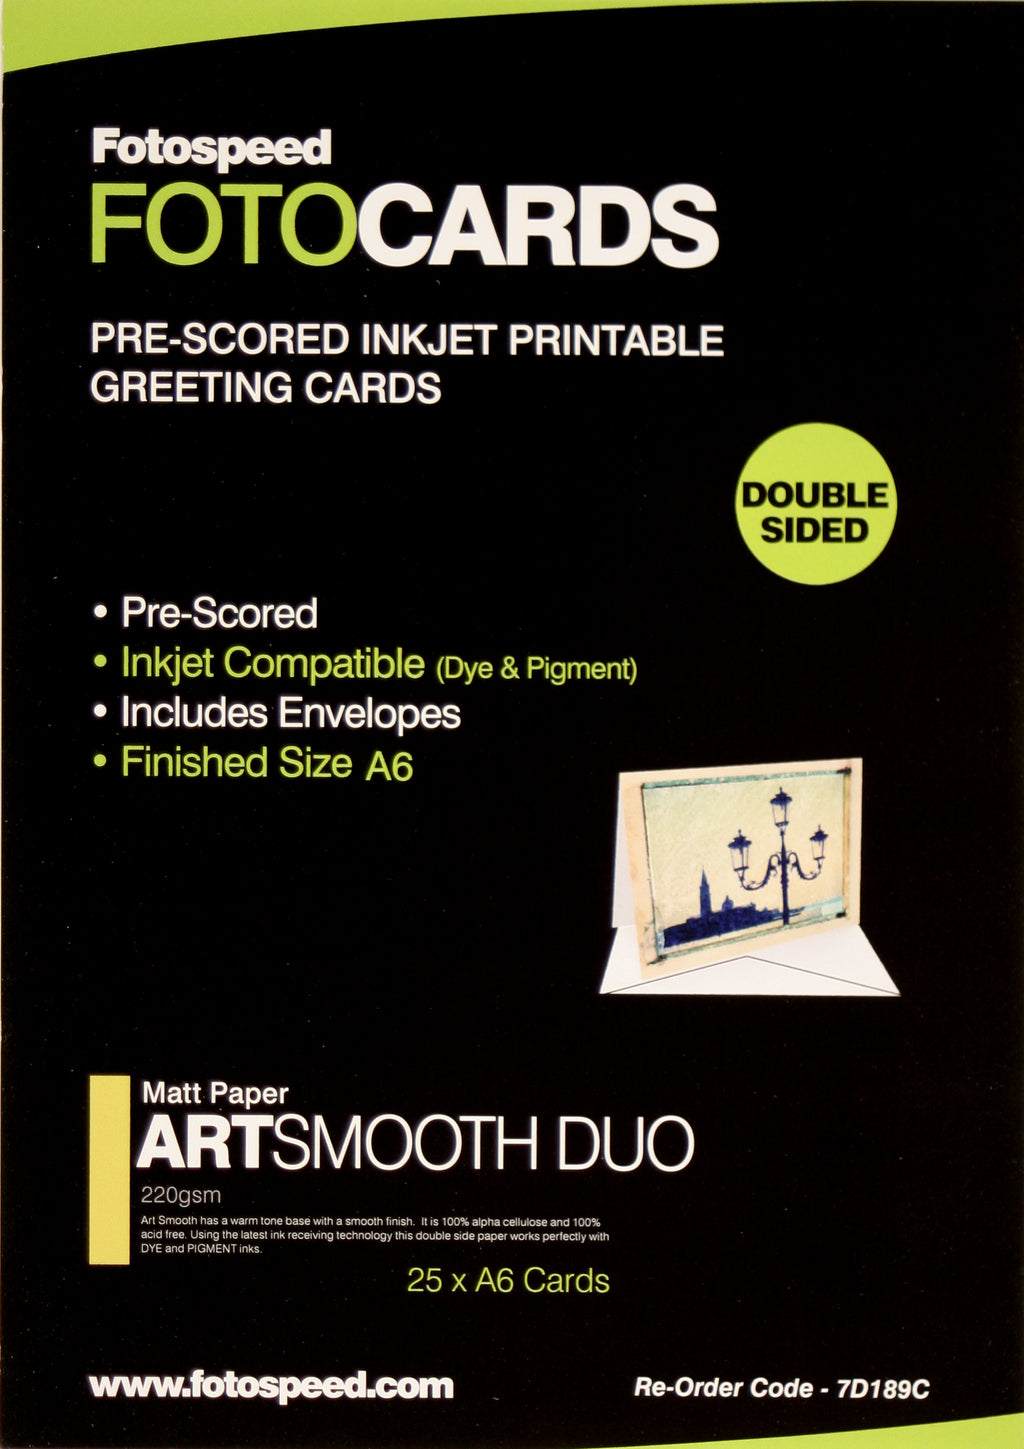 Fotospeed Fotocards Art Smooth Duo 220gsm